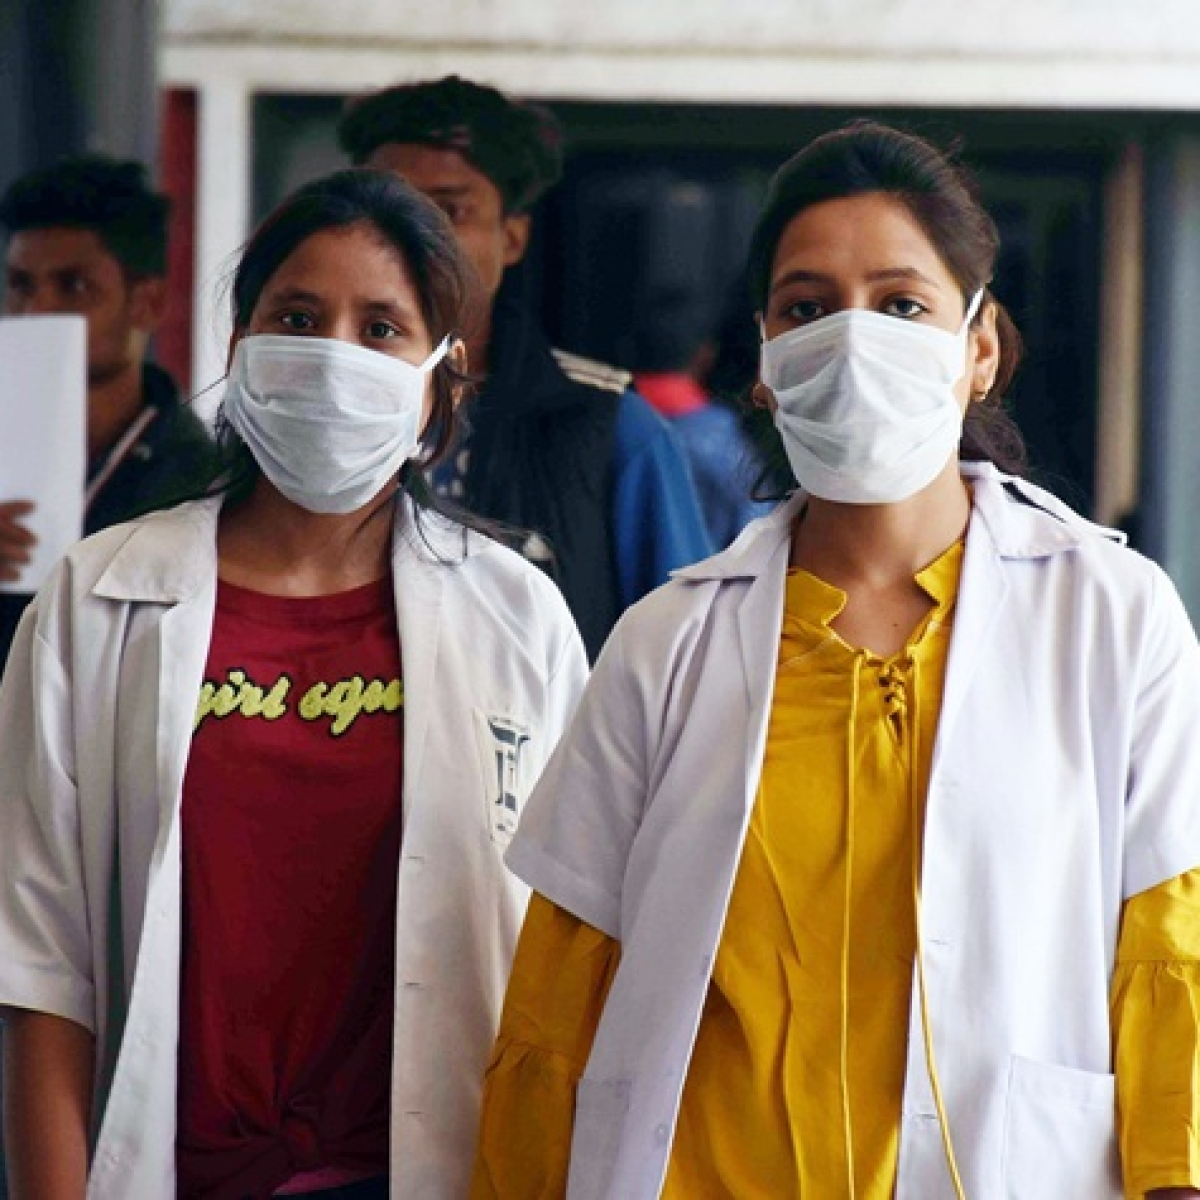 Coronavirus updates from India and the world: Total number positive cases rise to 471 in India